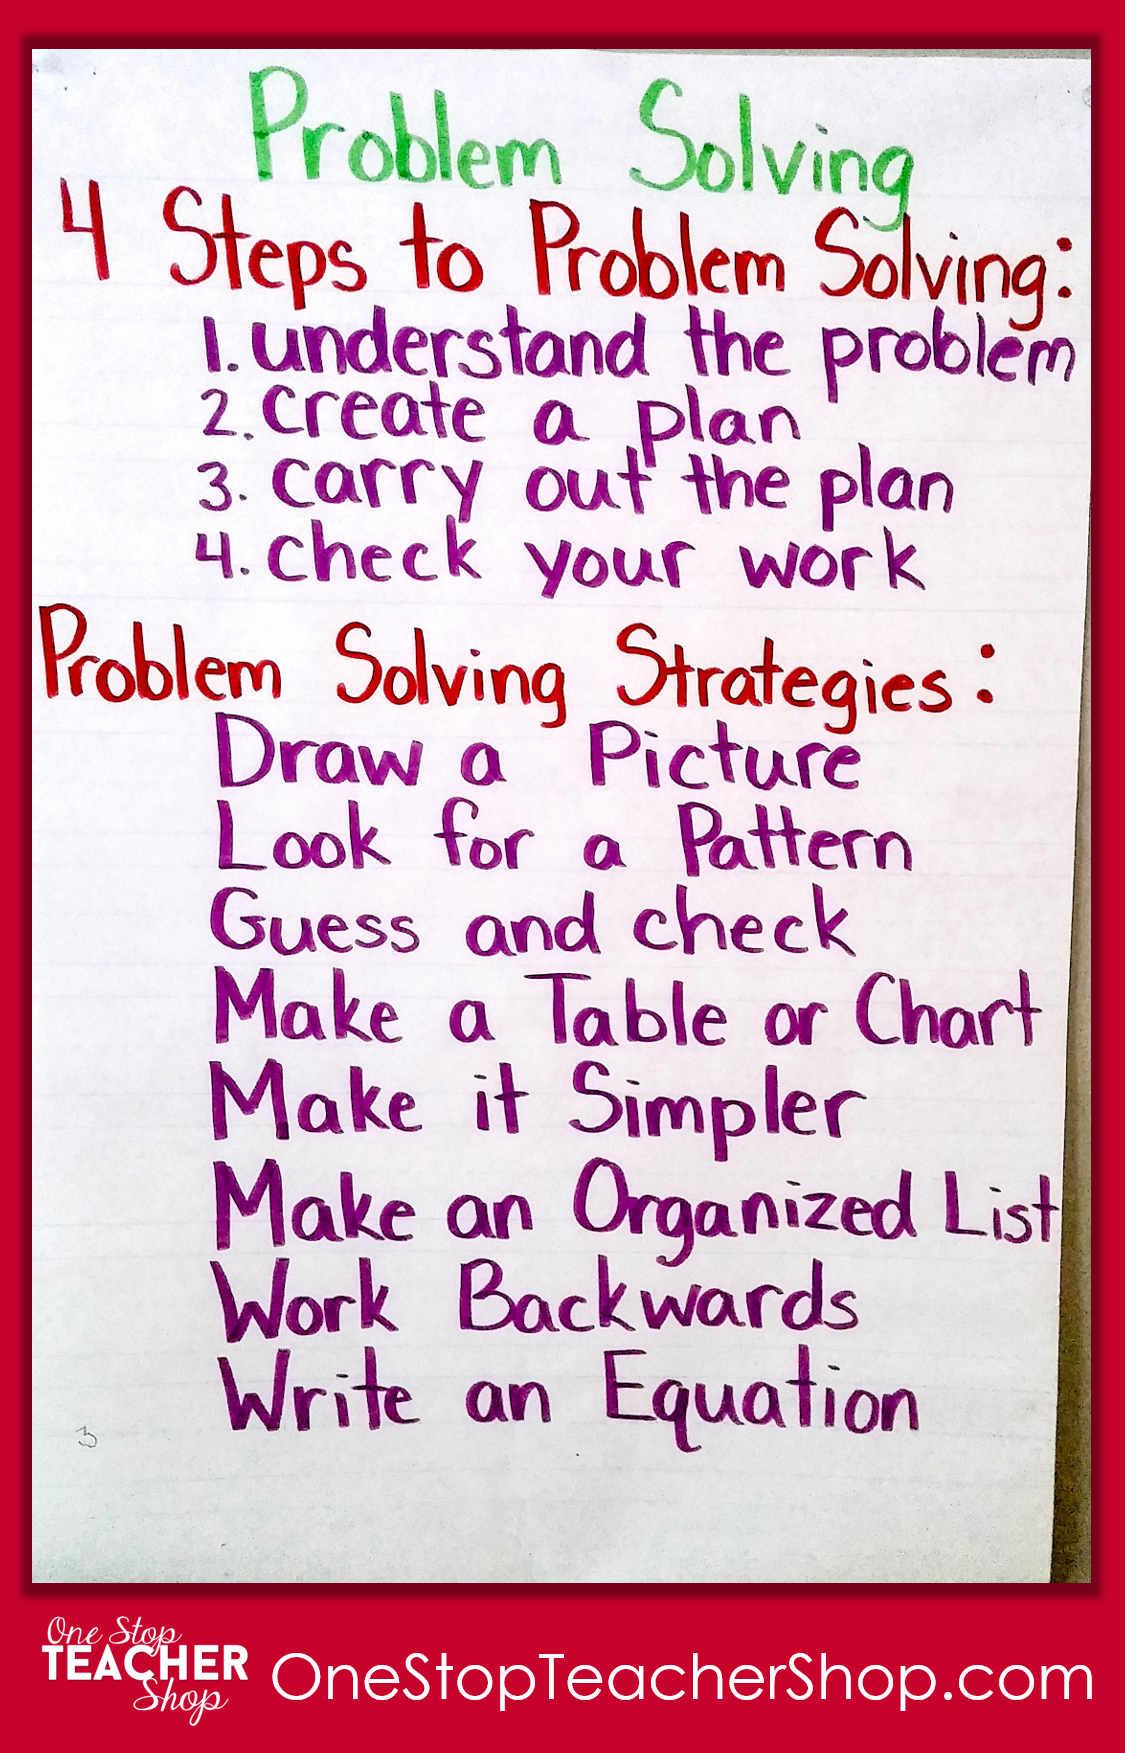 Problem Solving Anchor Chart - Check out my collection of anchor charts for math, reading, writing, and grammar. I love anchor charts even though I'm not so great at making them! Also, get some tips for using anchor charts effectively in your classroom.